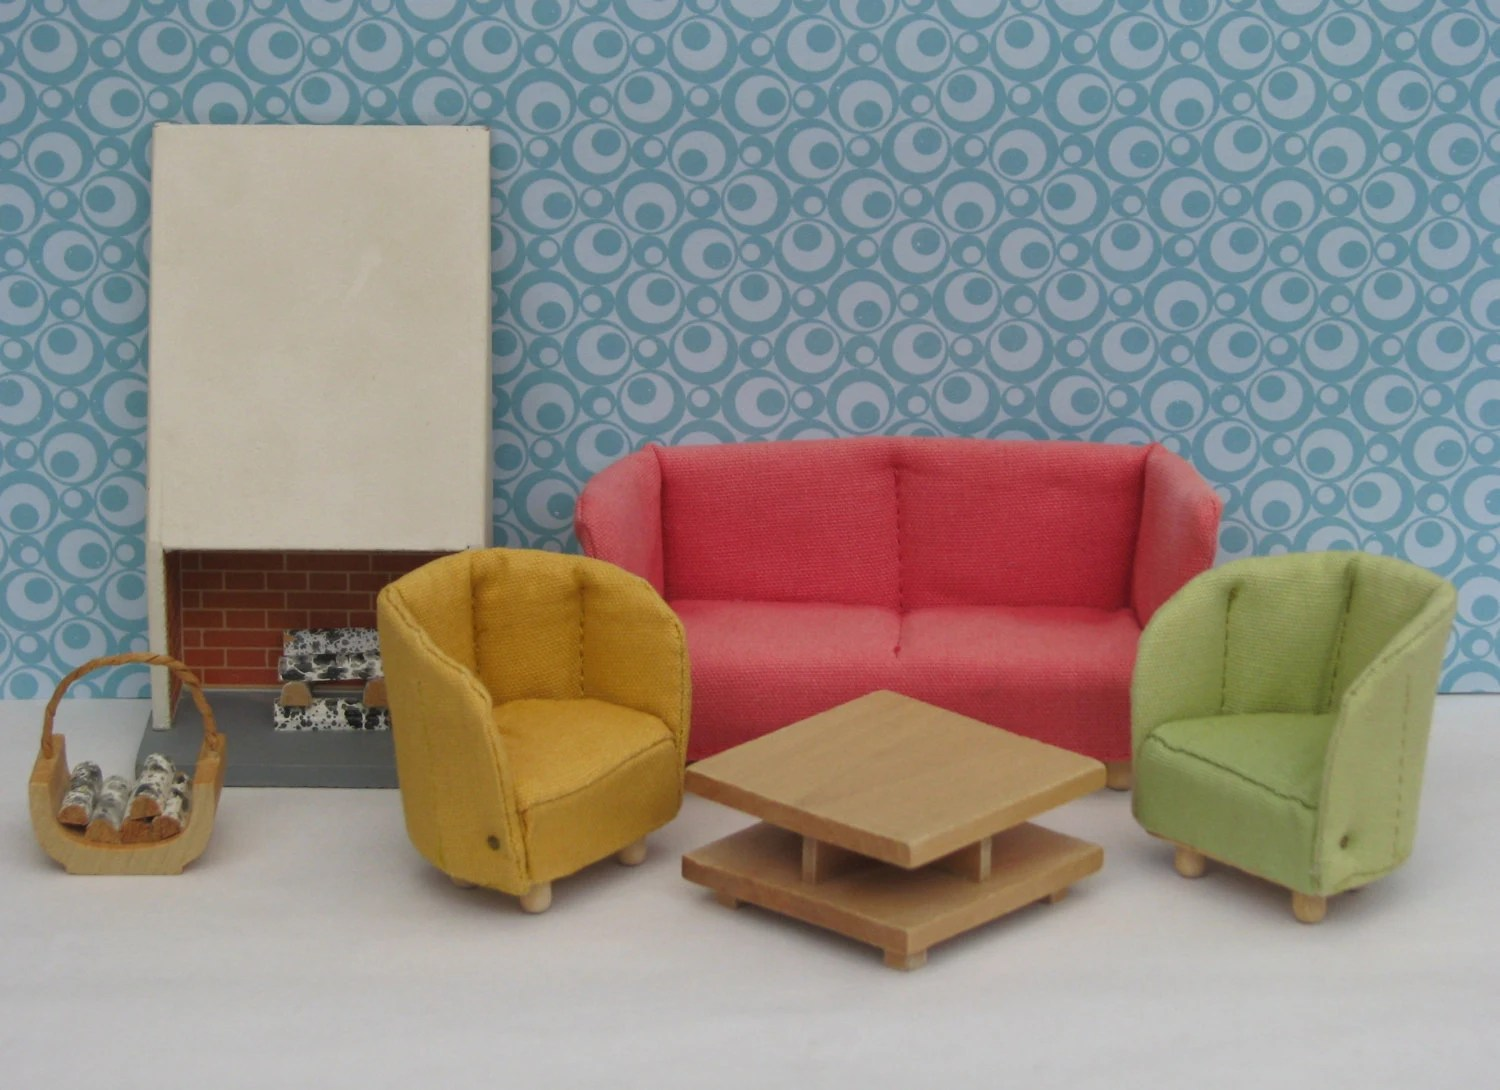 Doll House Vintage Living Room Set 1970s Couch Chairs